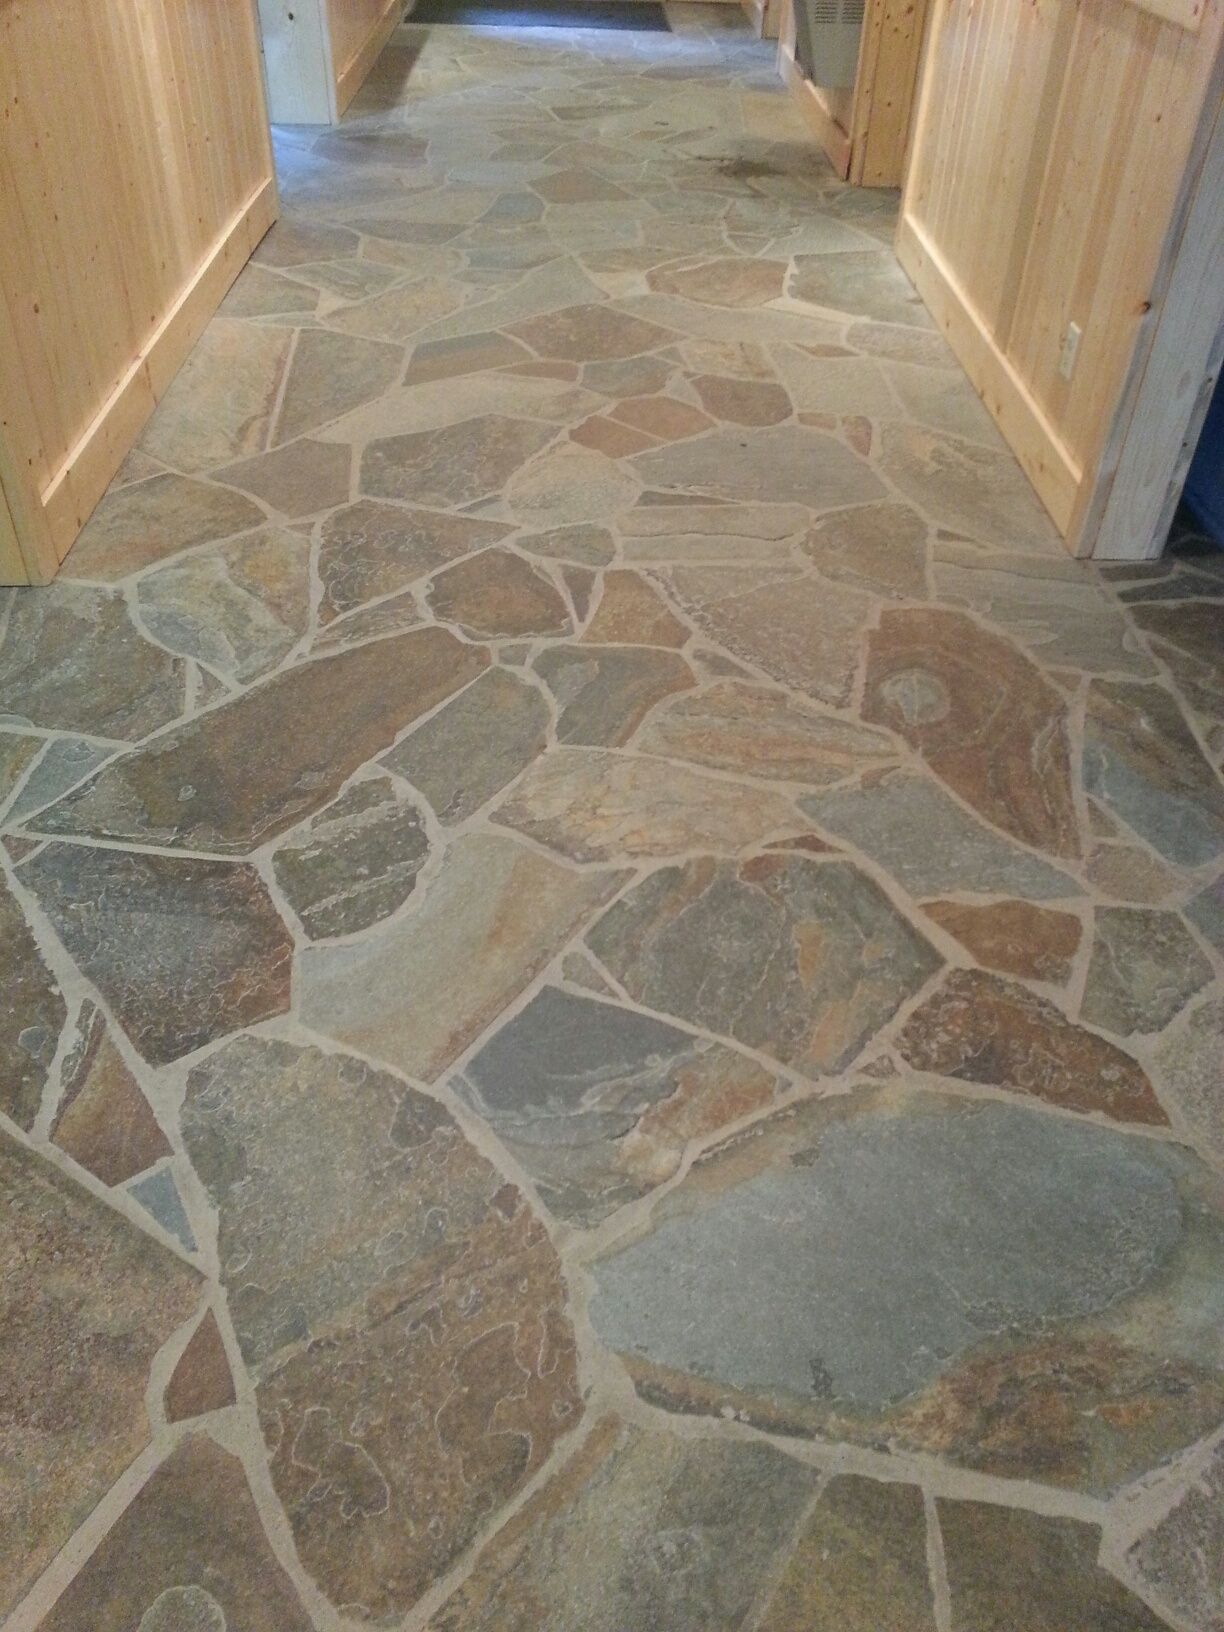 Natural stone tiles for kitchen floors home floors pinterest natural stone tiles for kitchen floors dailygadgetfo Images